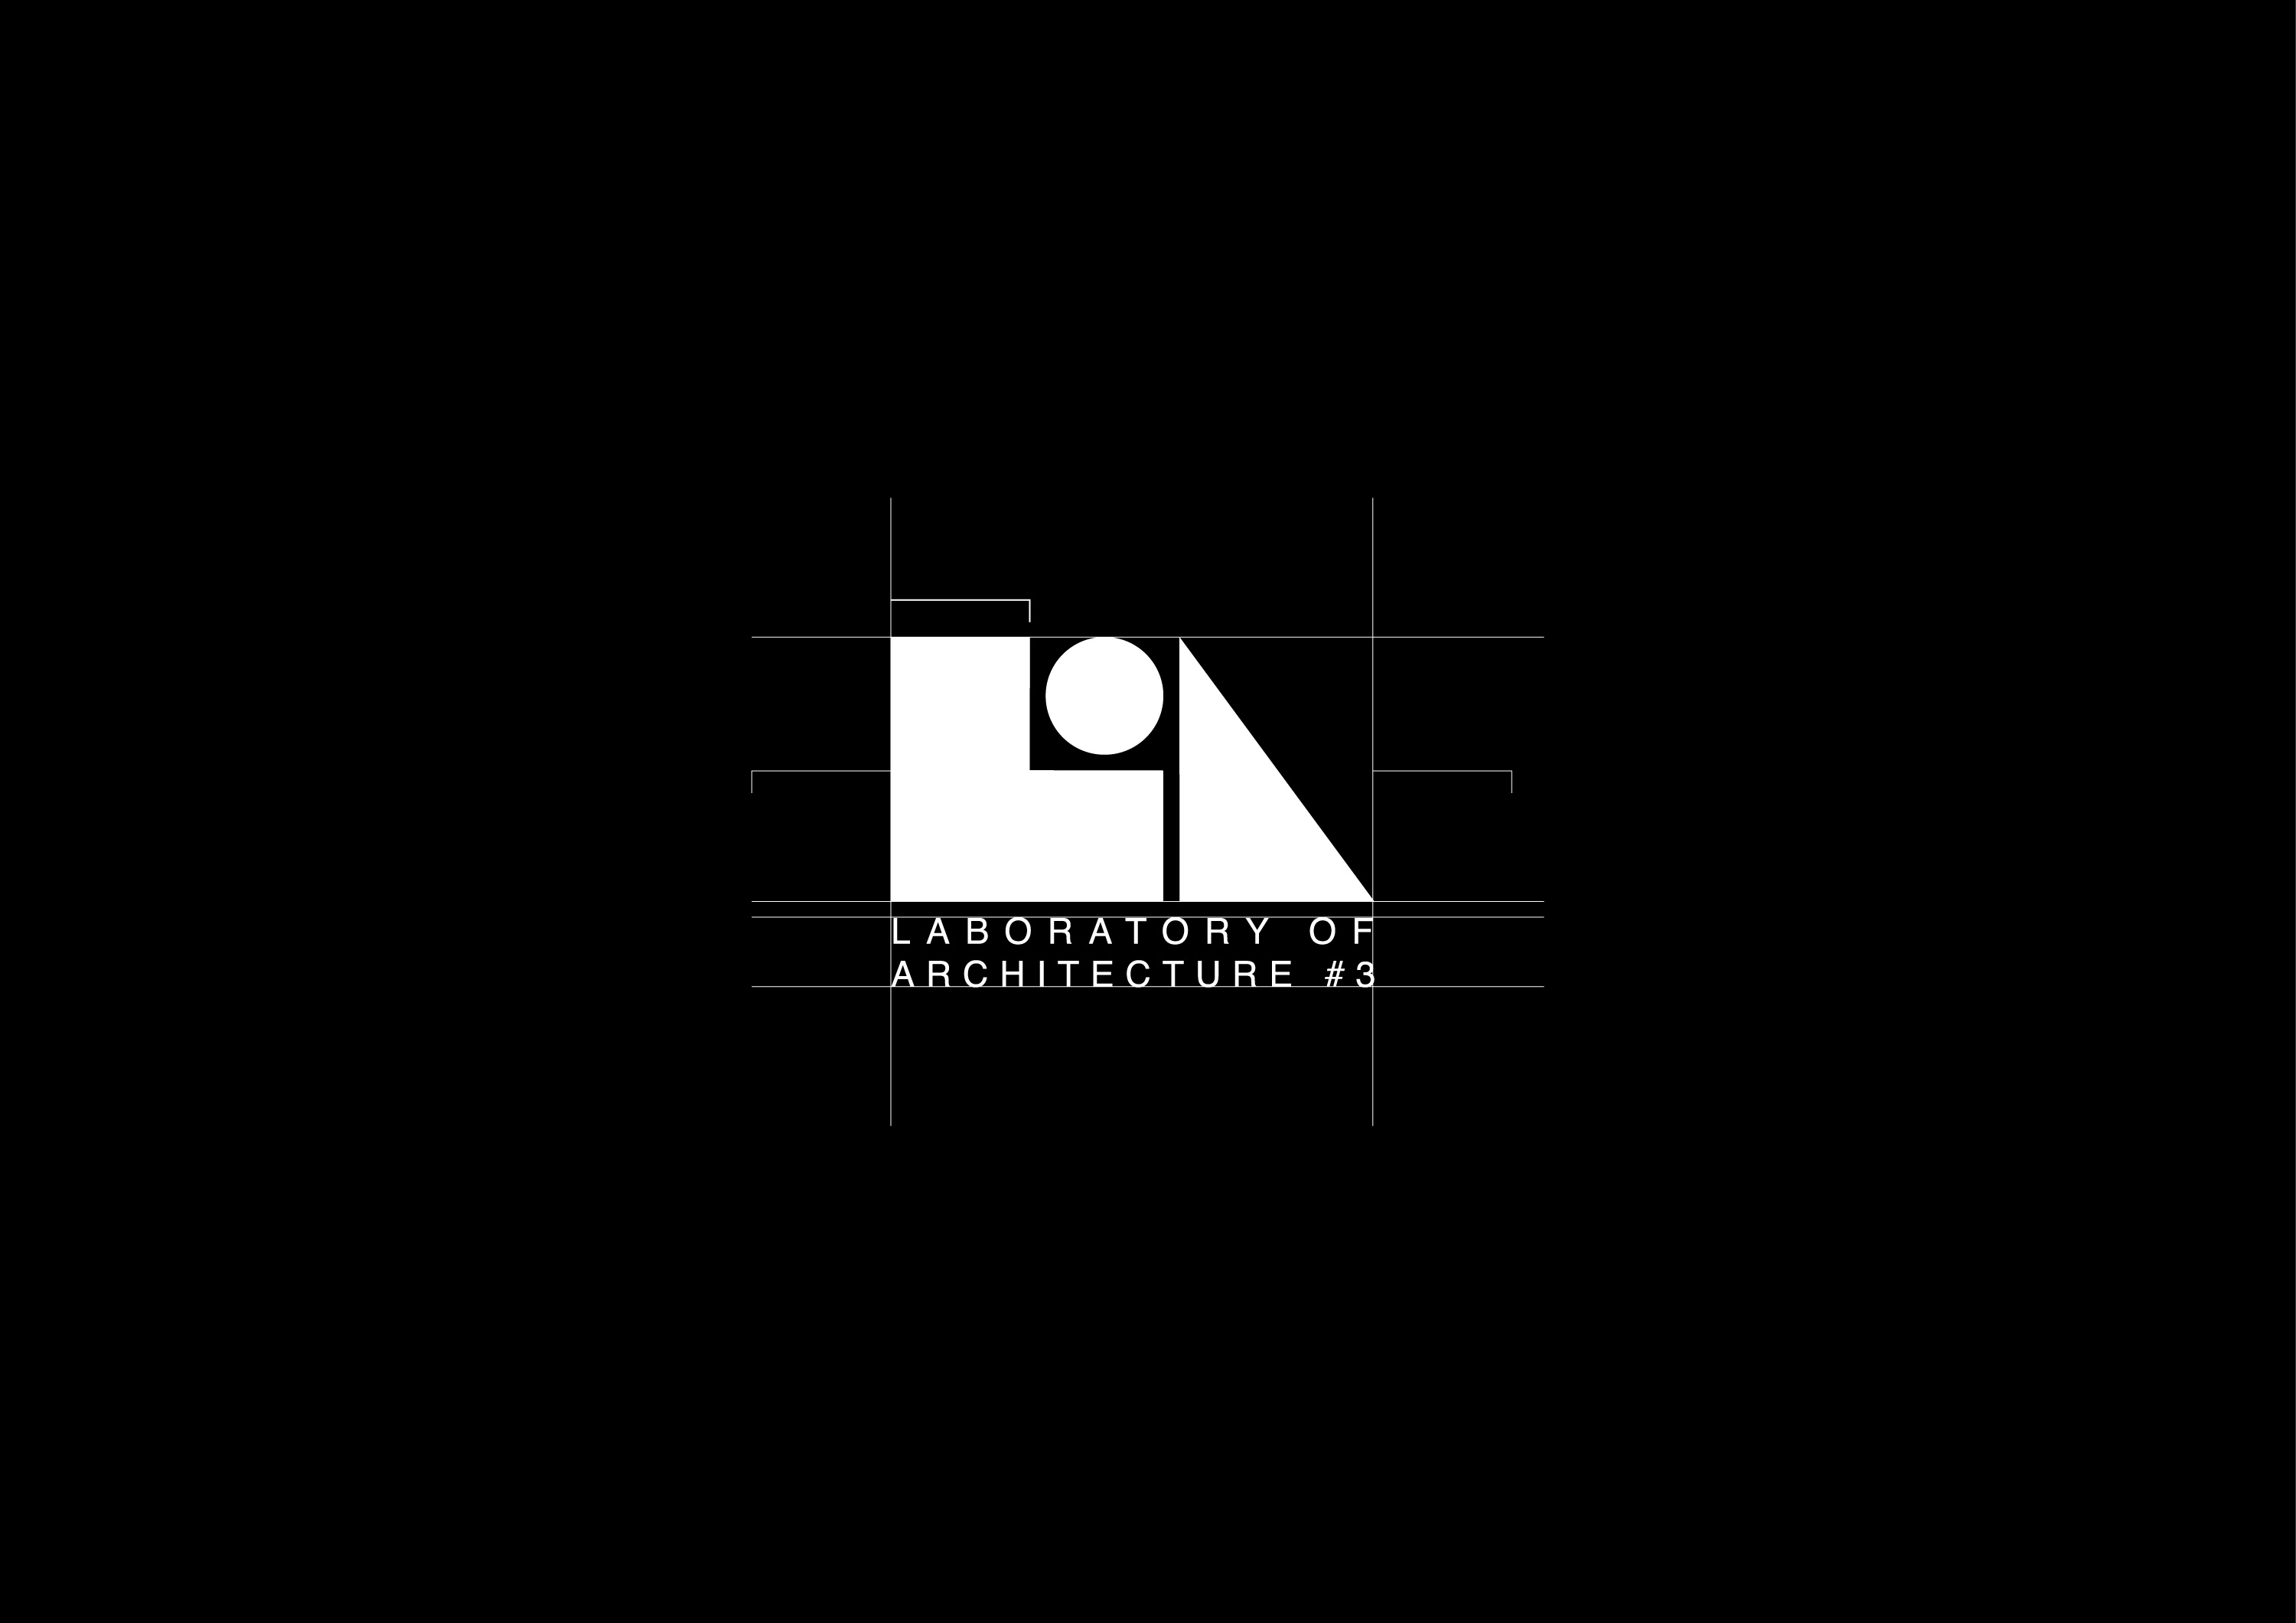 Identity for Architectural practise LOA#3